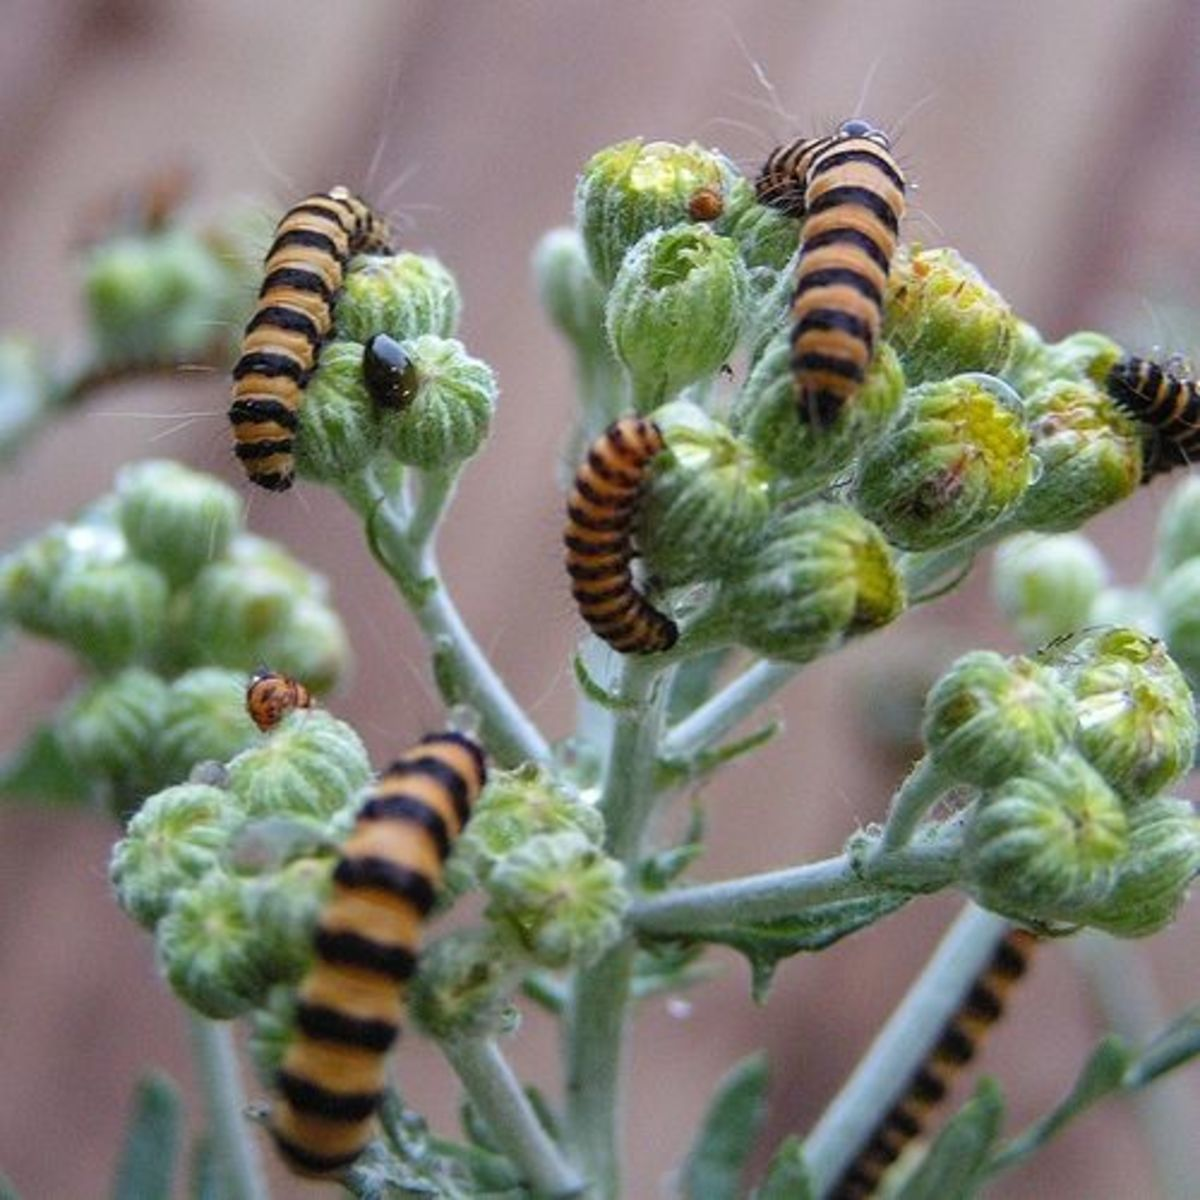 Yellow and Black Caterpillars on Tansy